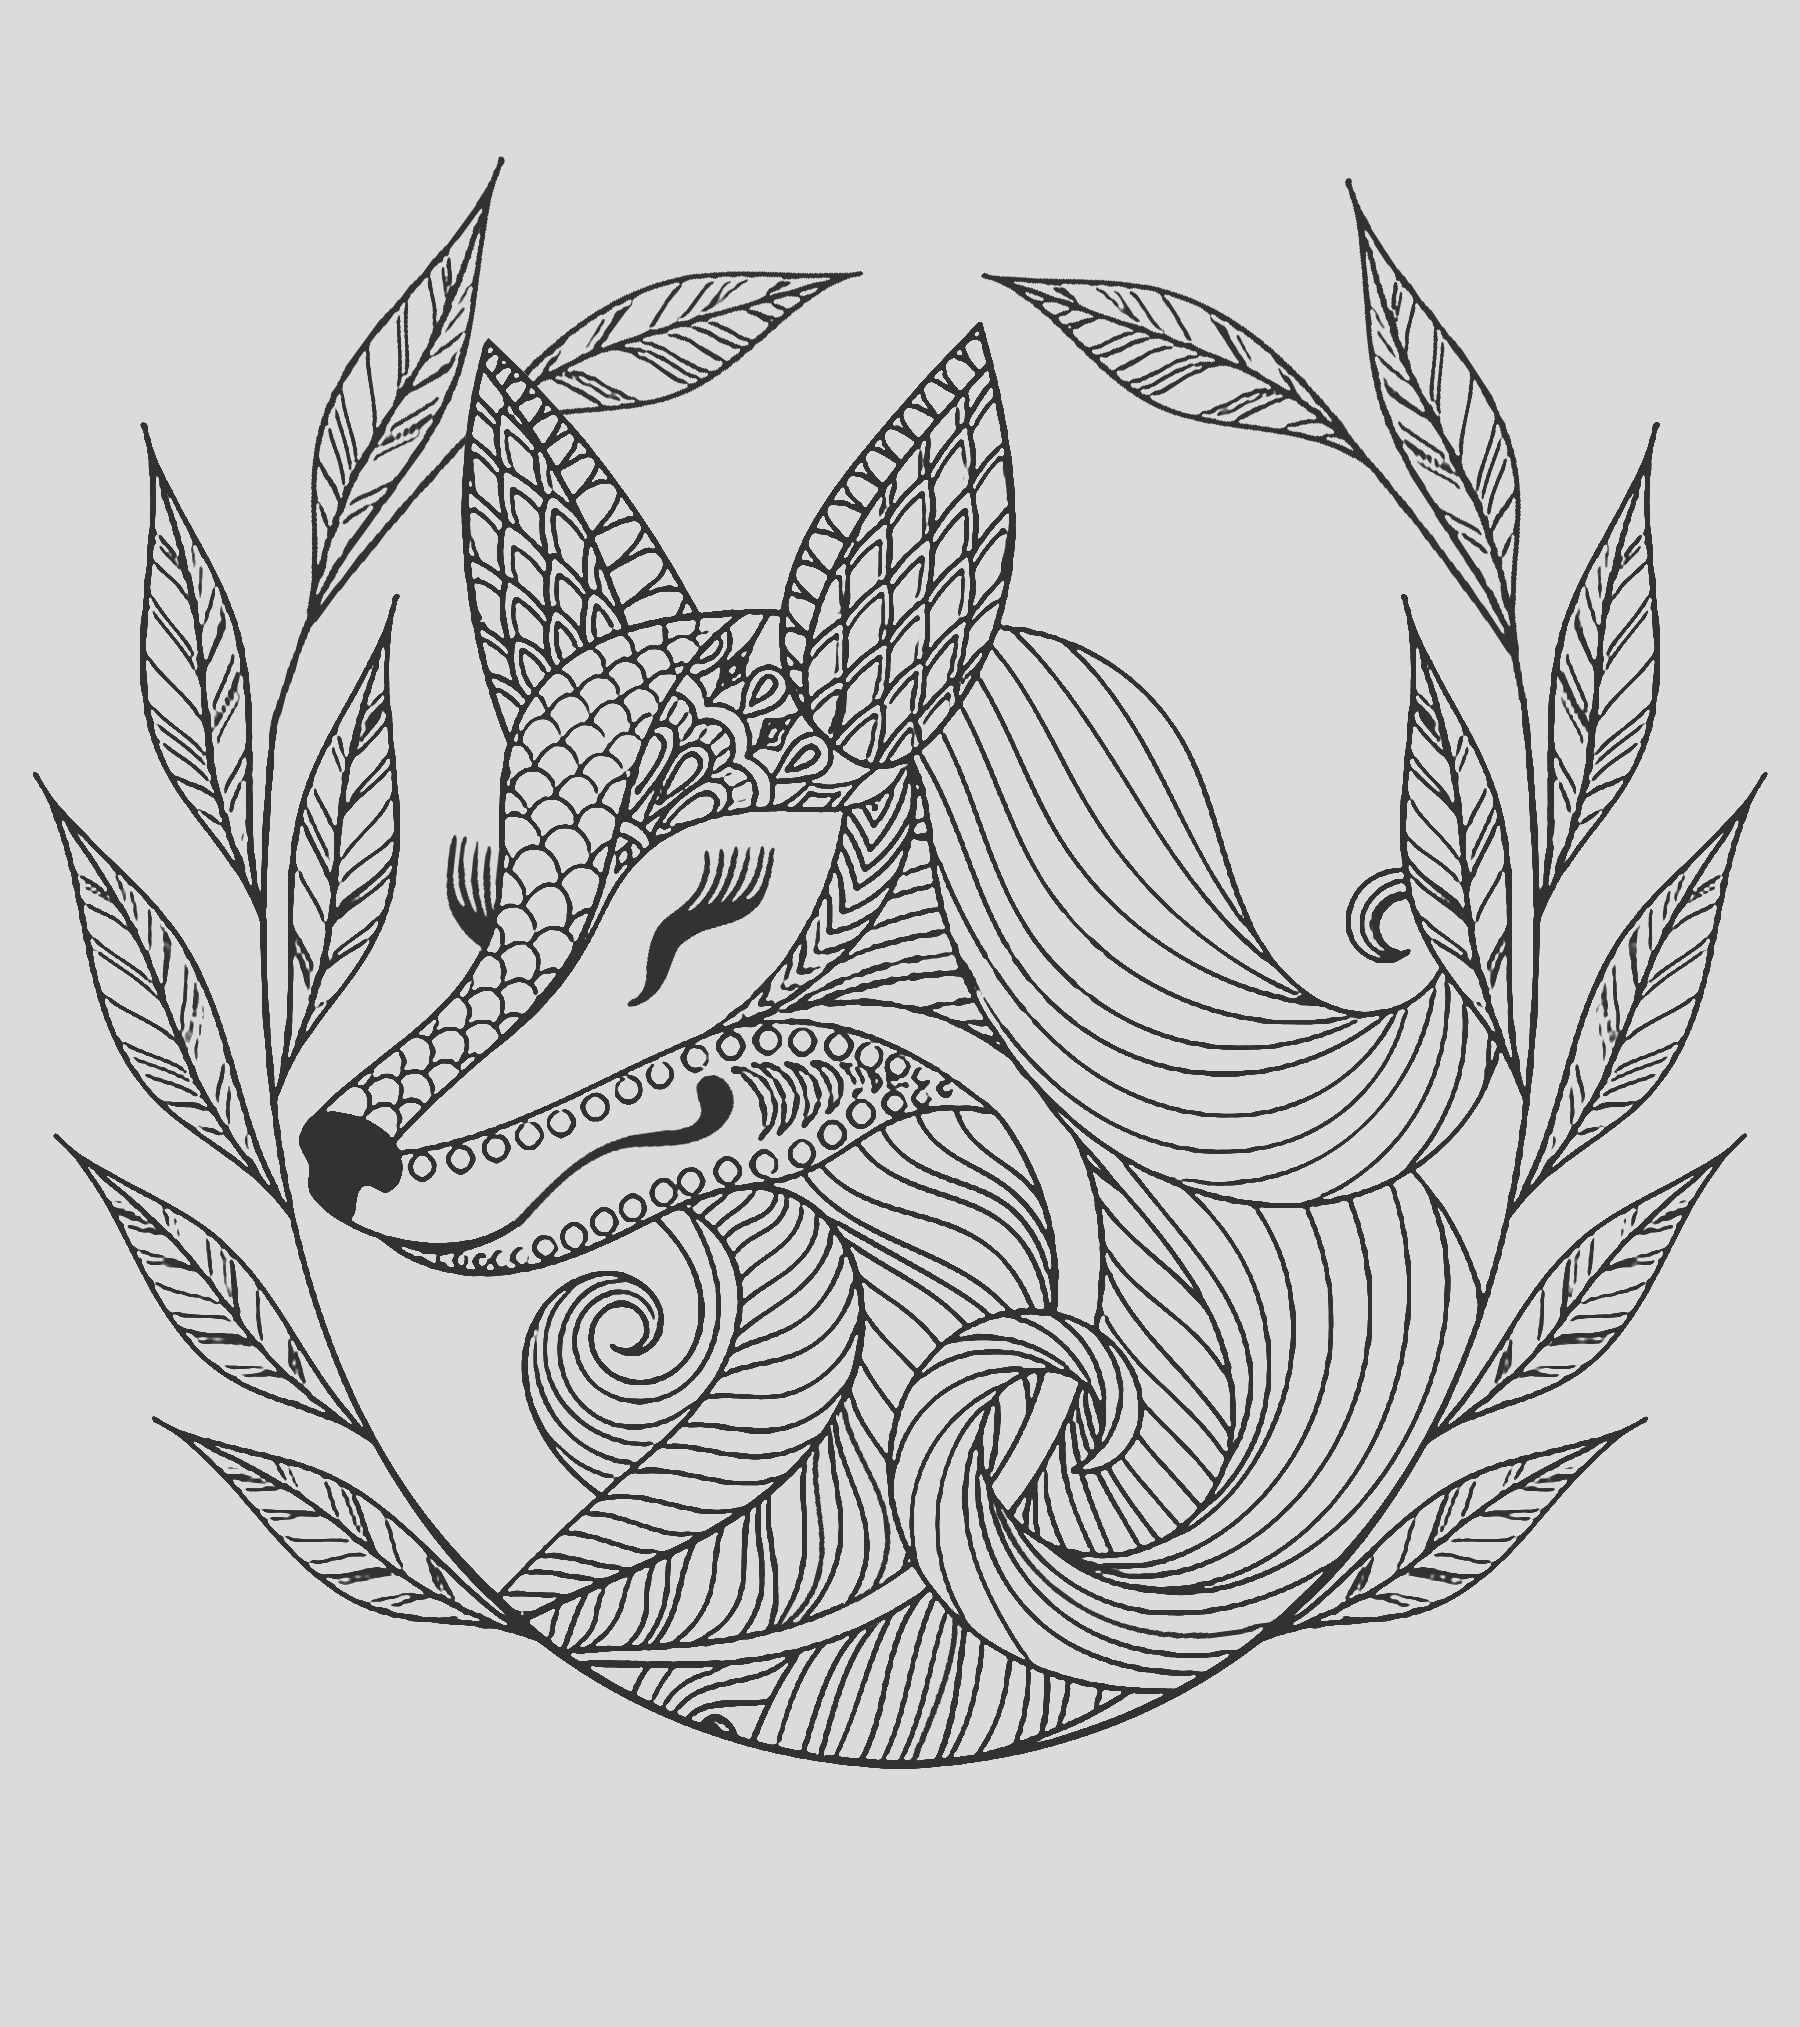 image=animals coloring page fox and leaves 1